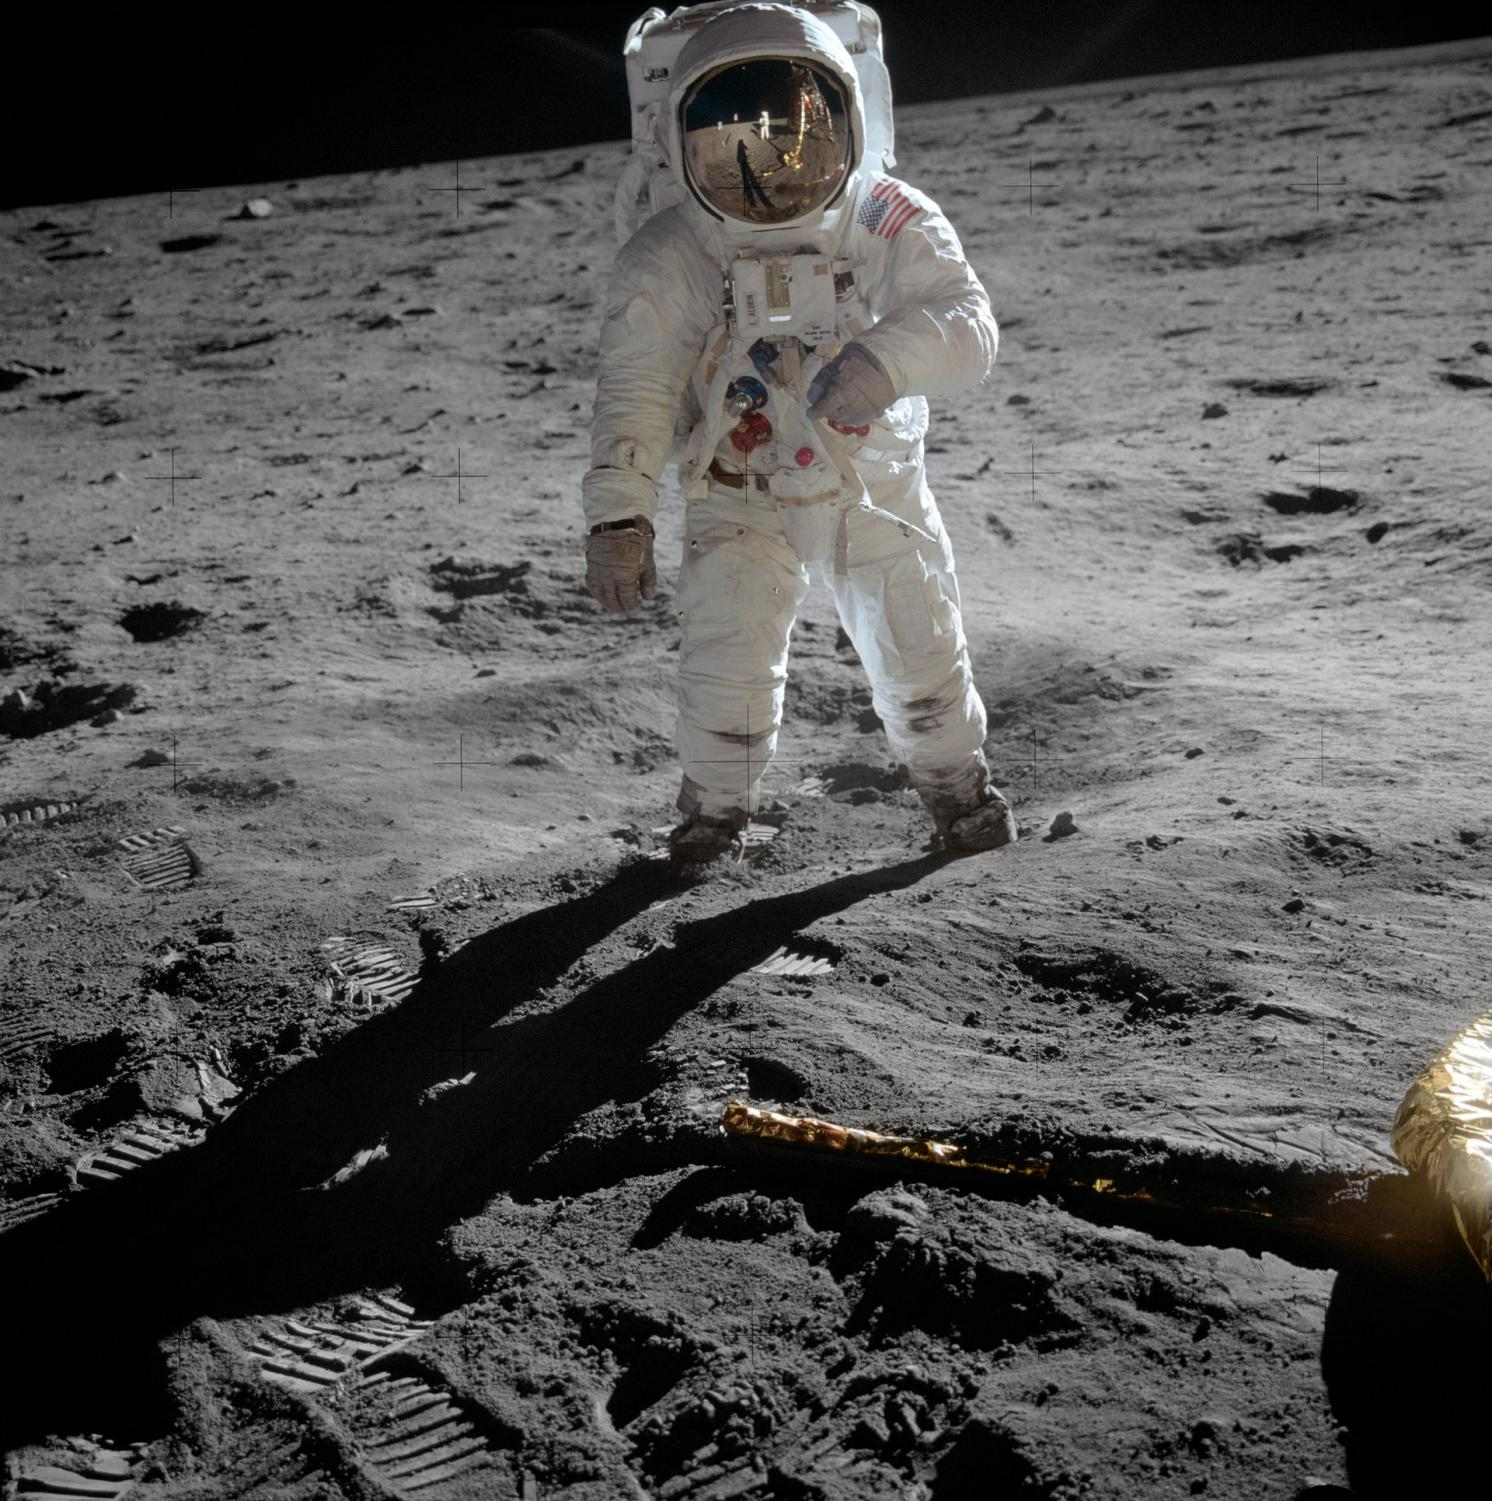 Astronaut Buzz Aldrin on the moon  - Wikimedia Commons/NASA